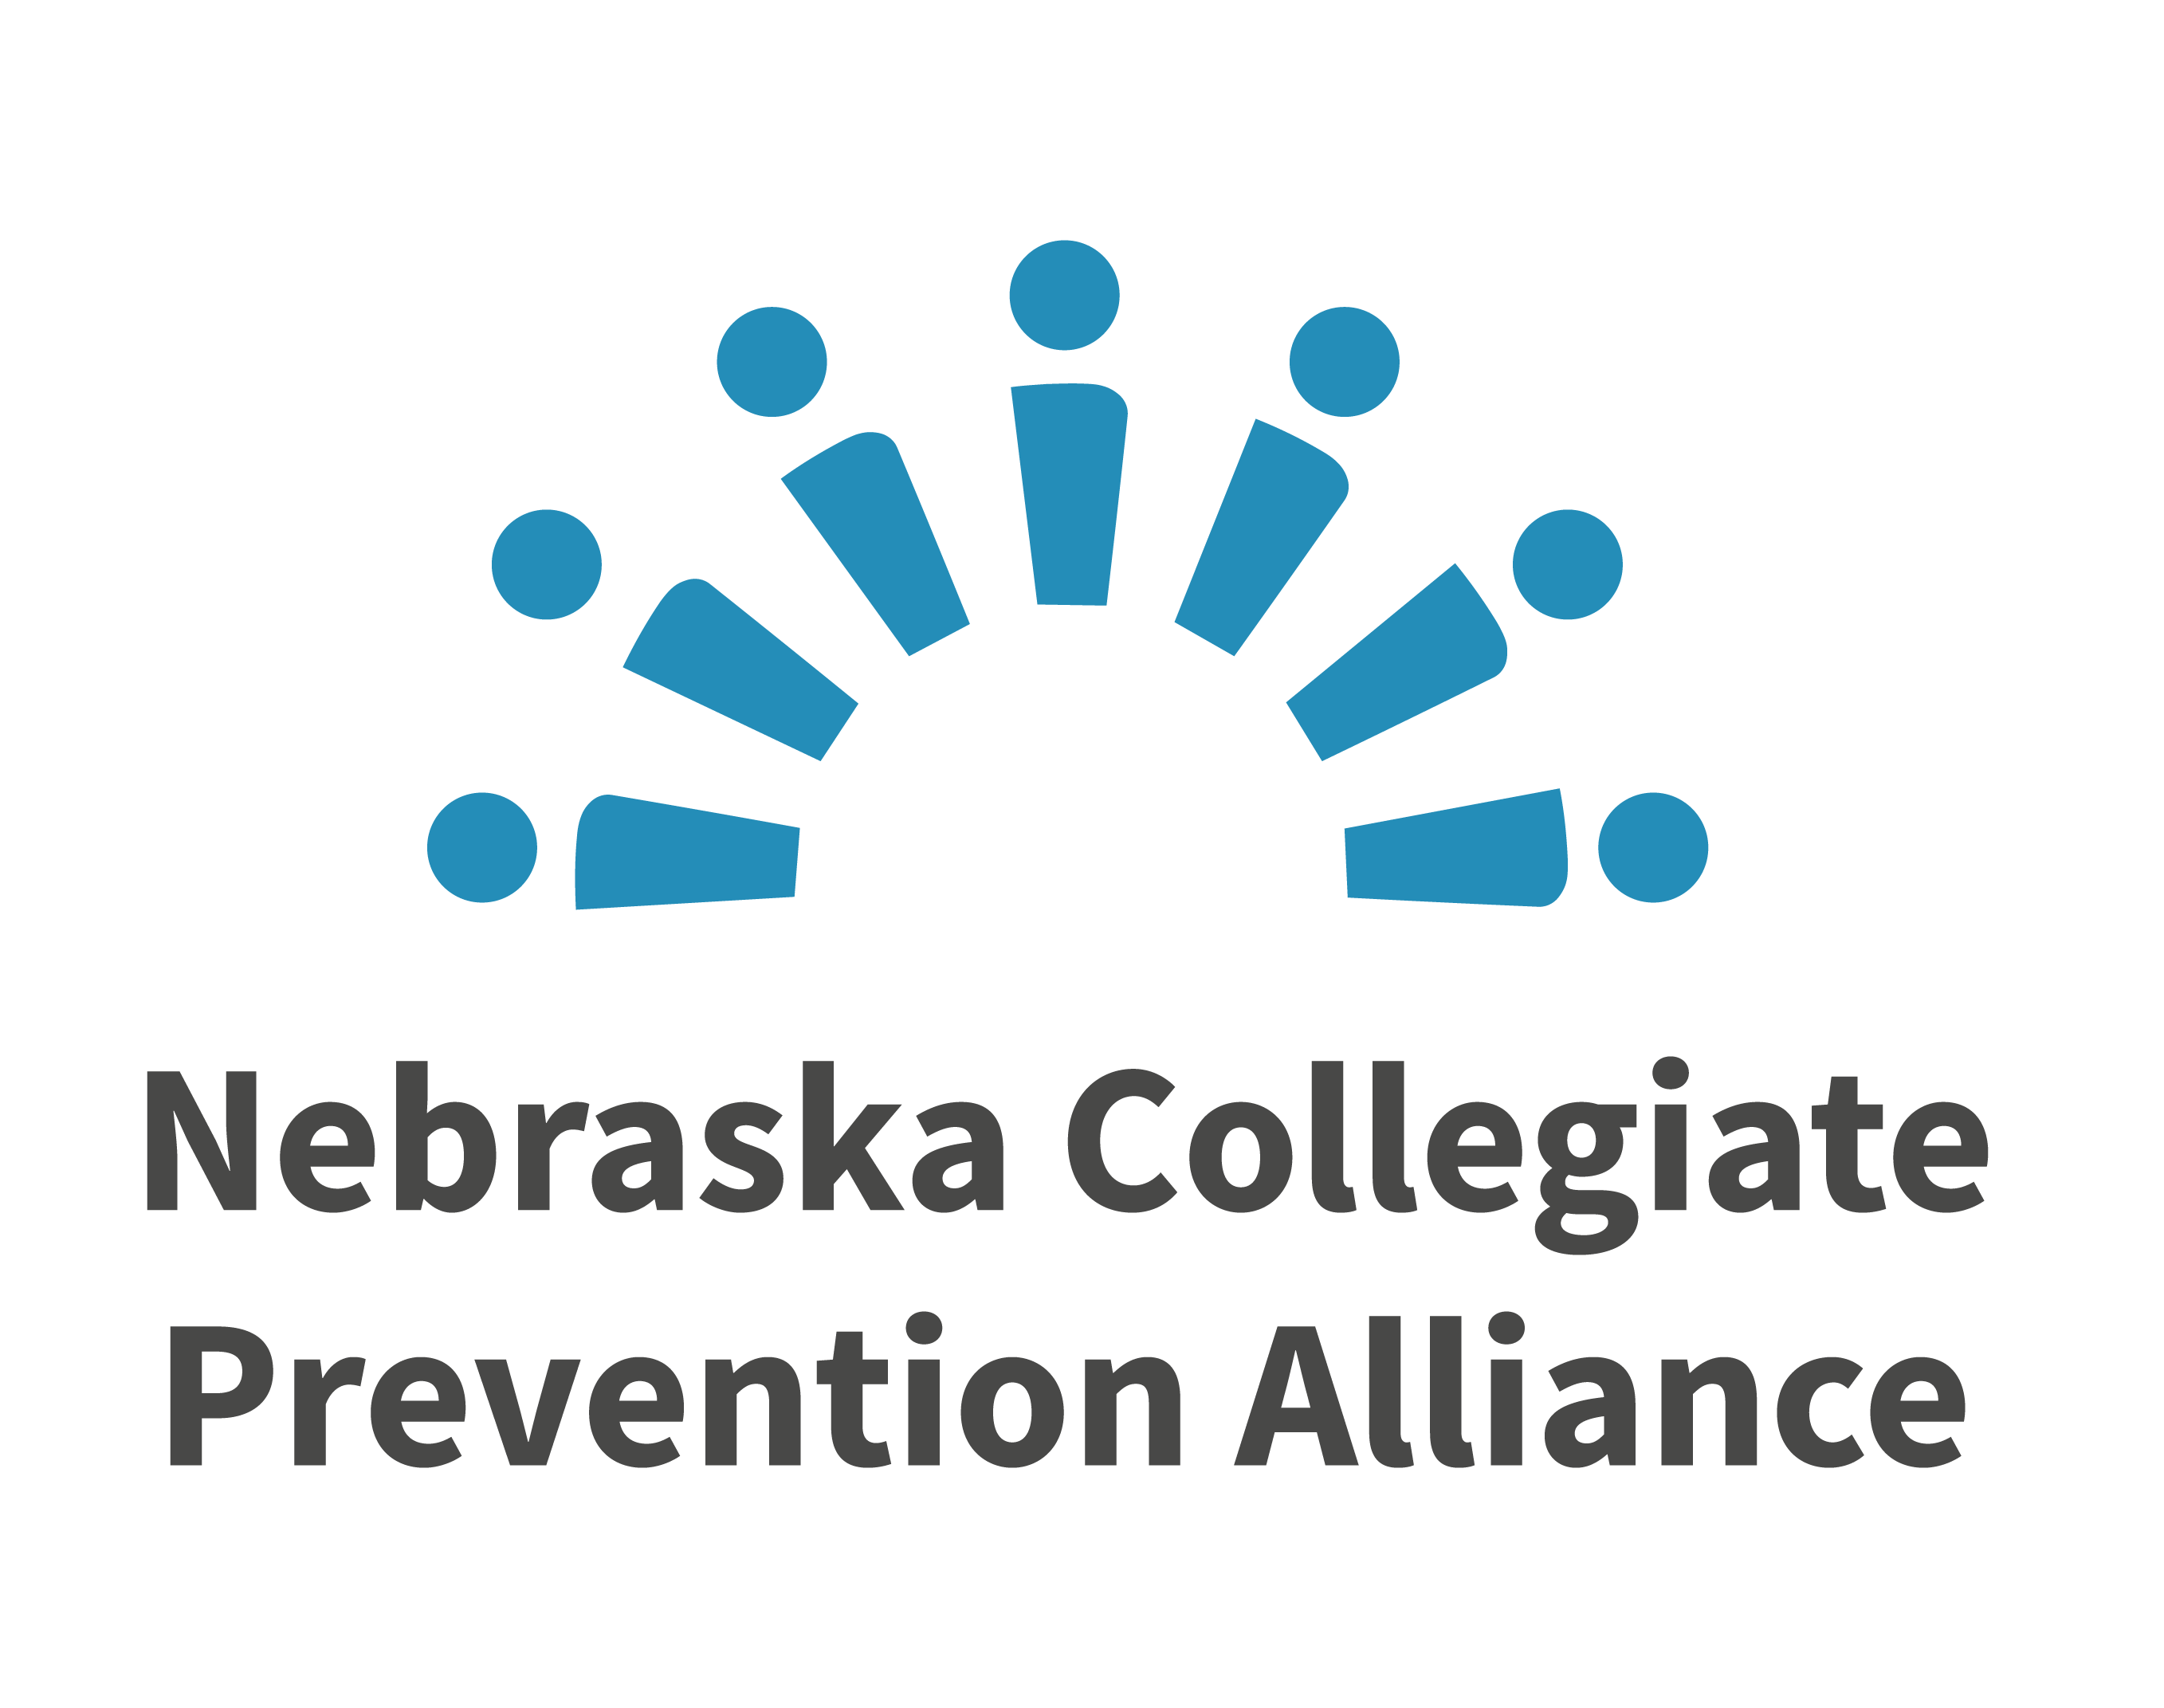 Nebraska Collegiate Consortium to Reduce High-Risk Drinking (NCC) Image